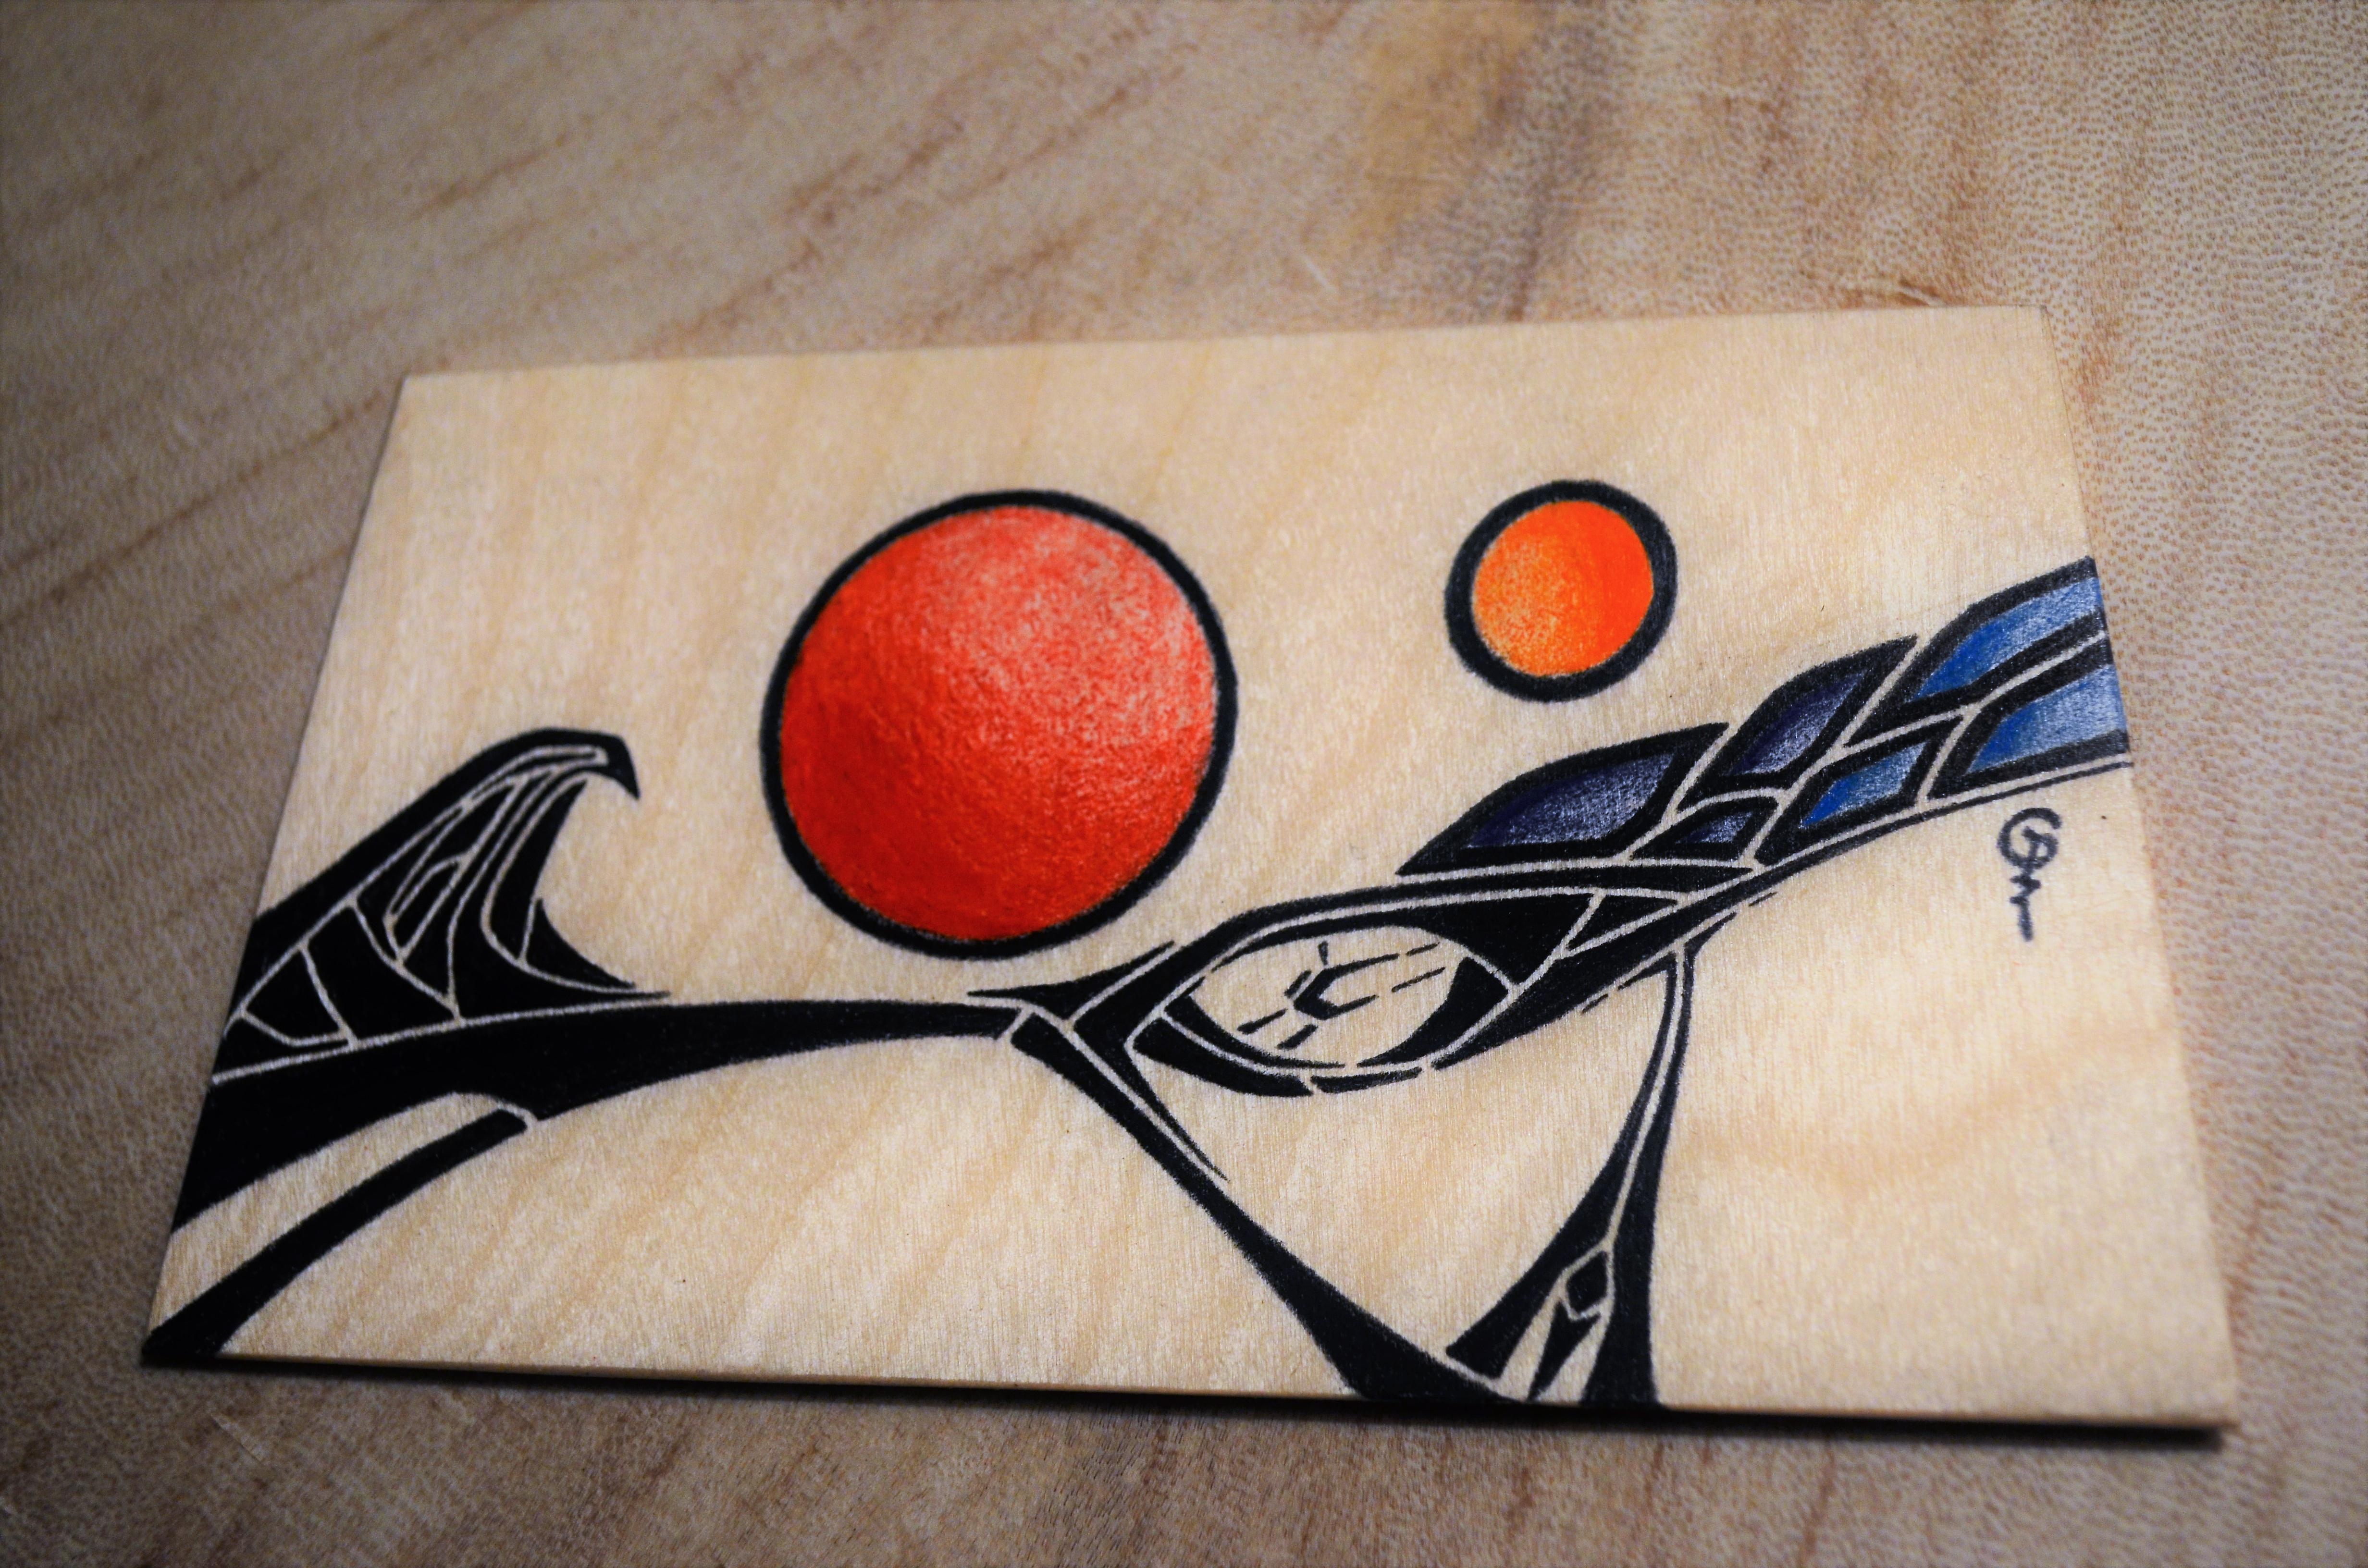 Pencil crayon on wood magnet